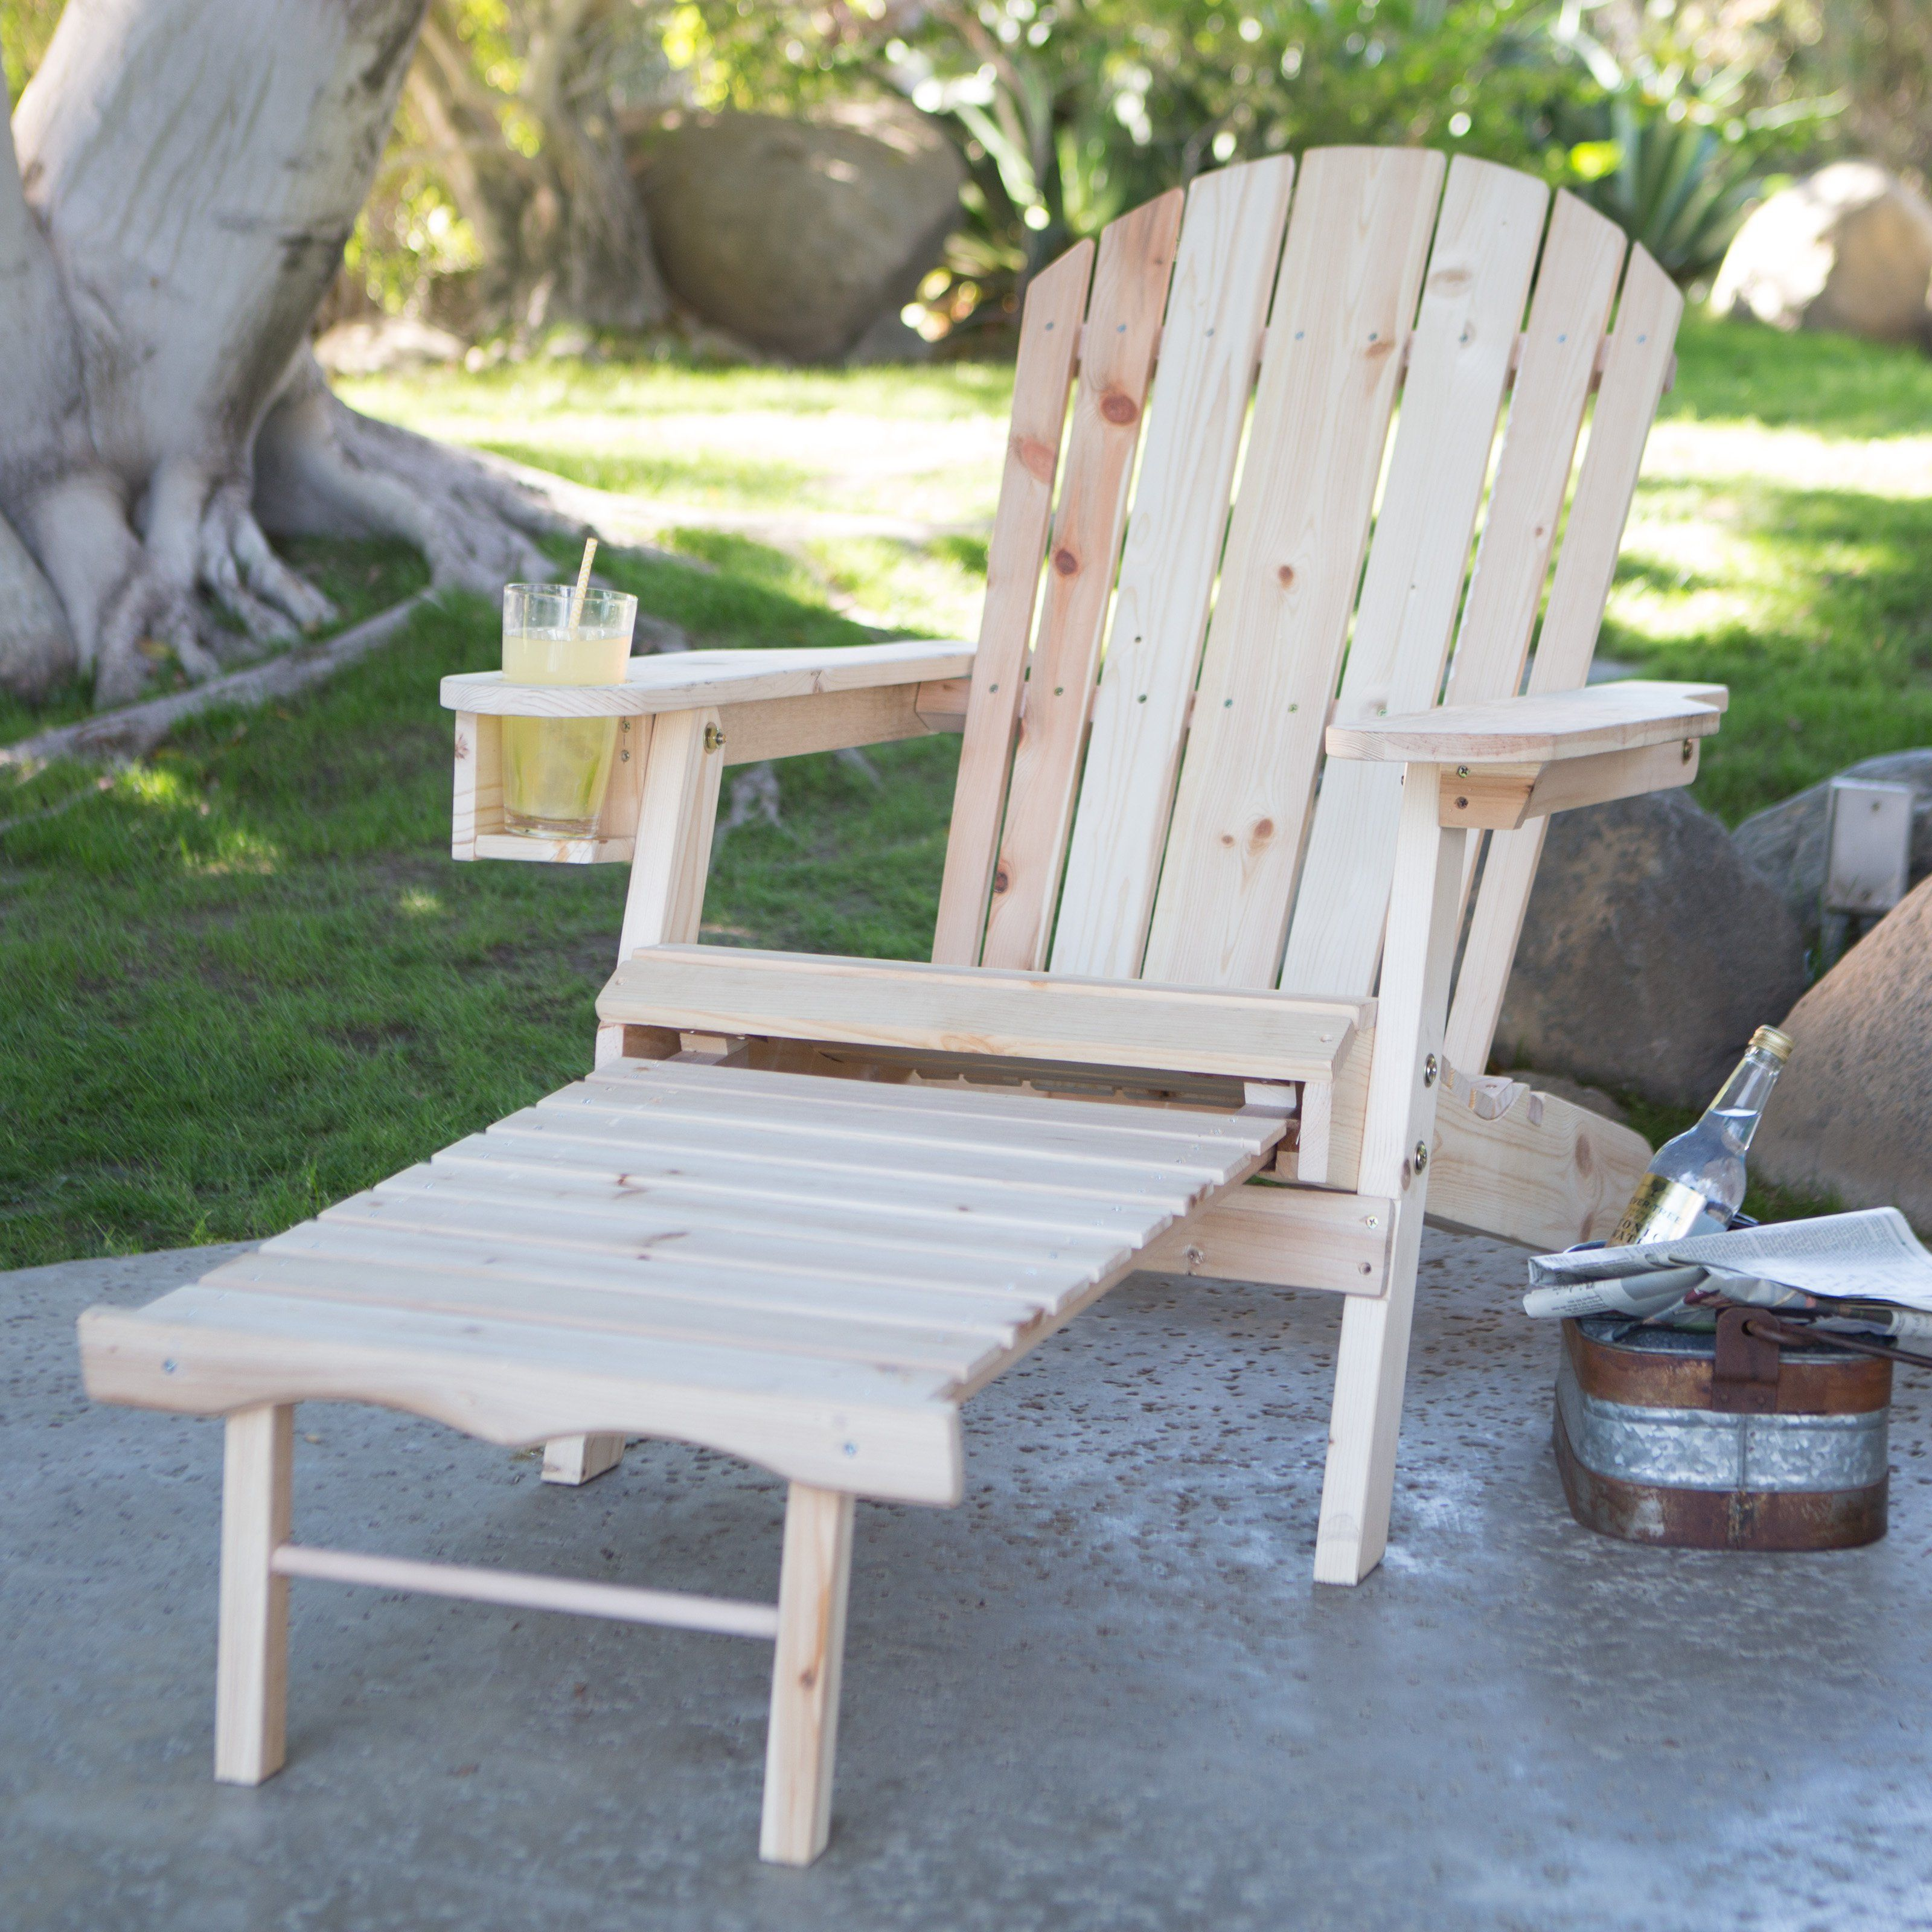 Coral Coast Adirondack Chair With Pull Out Ottoman And Cup Holder Unfinished 89 98 Hayneedle Adirondack Chair Outdoor Chairs Outdoor Furnishings